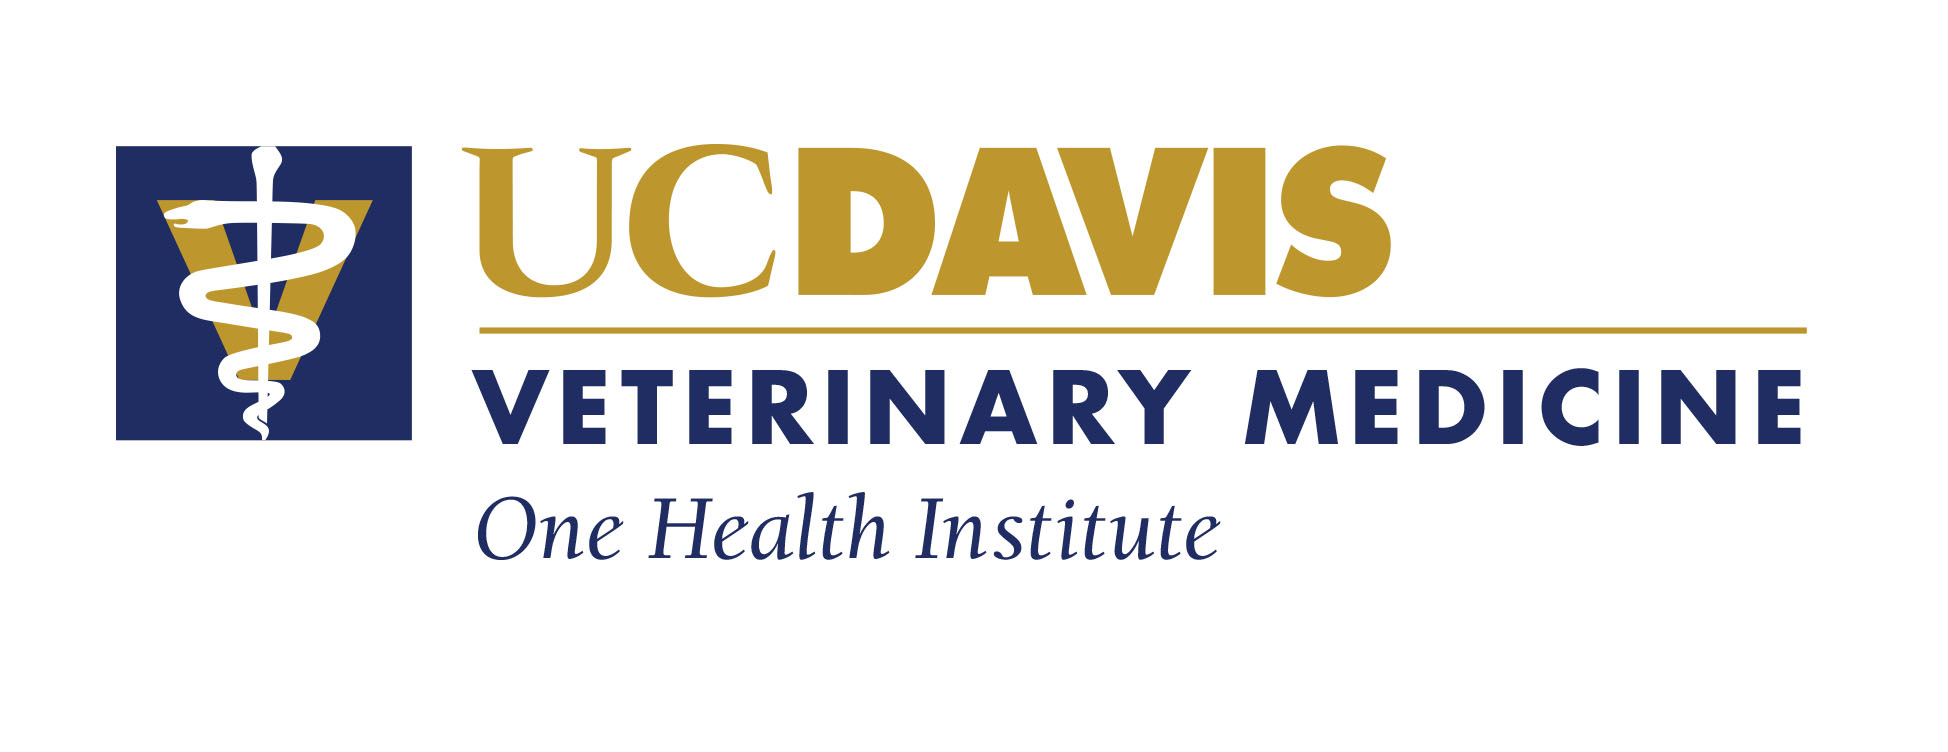 UC Davis One Health Institute